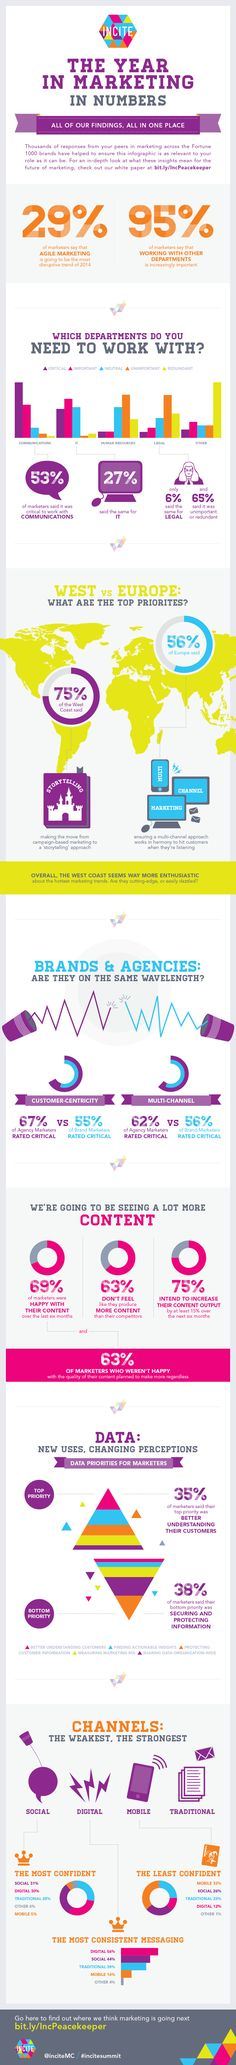 Infographic - Most Disruptive Trends in Marketing - 2014 and 2015 #Social #Digital #Mobile